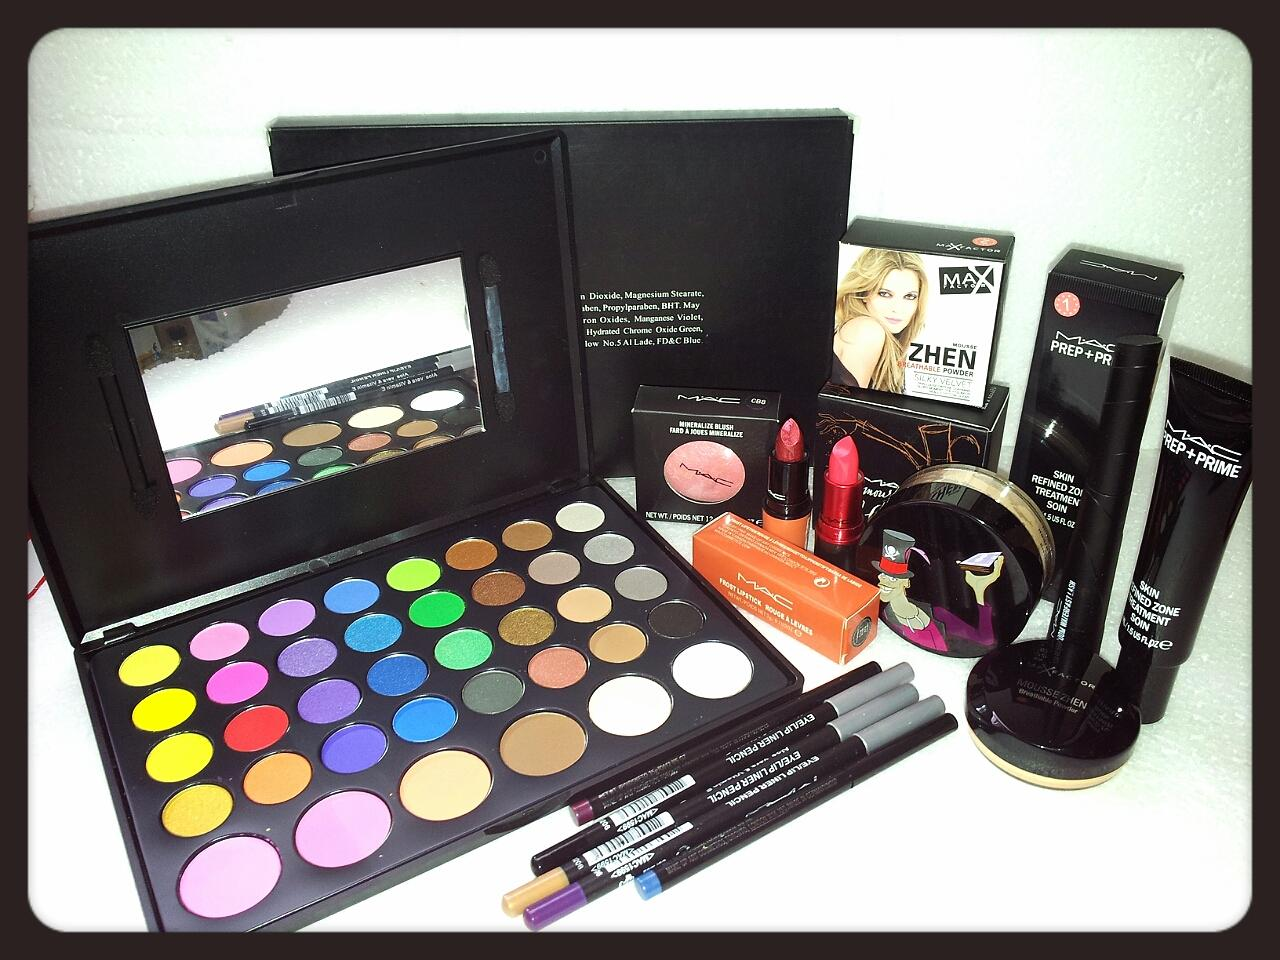 mac ramadan makeup set for sal end 812013 215 pm myt